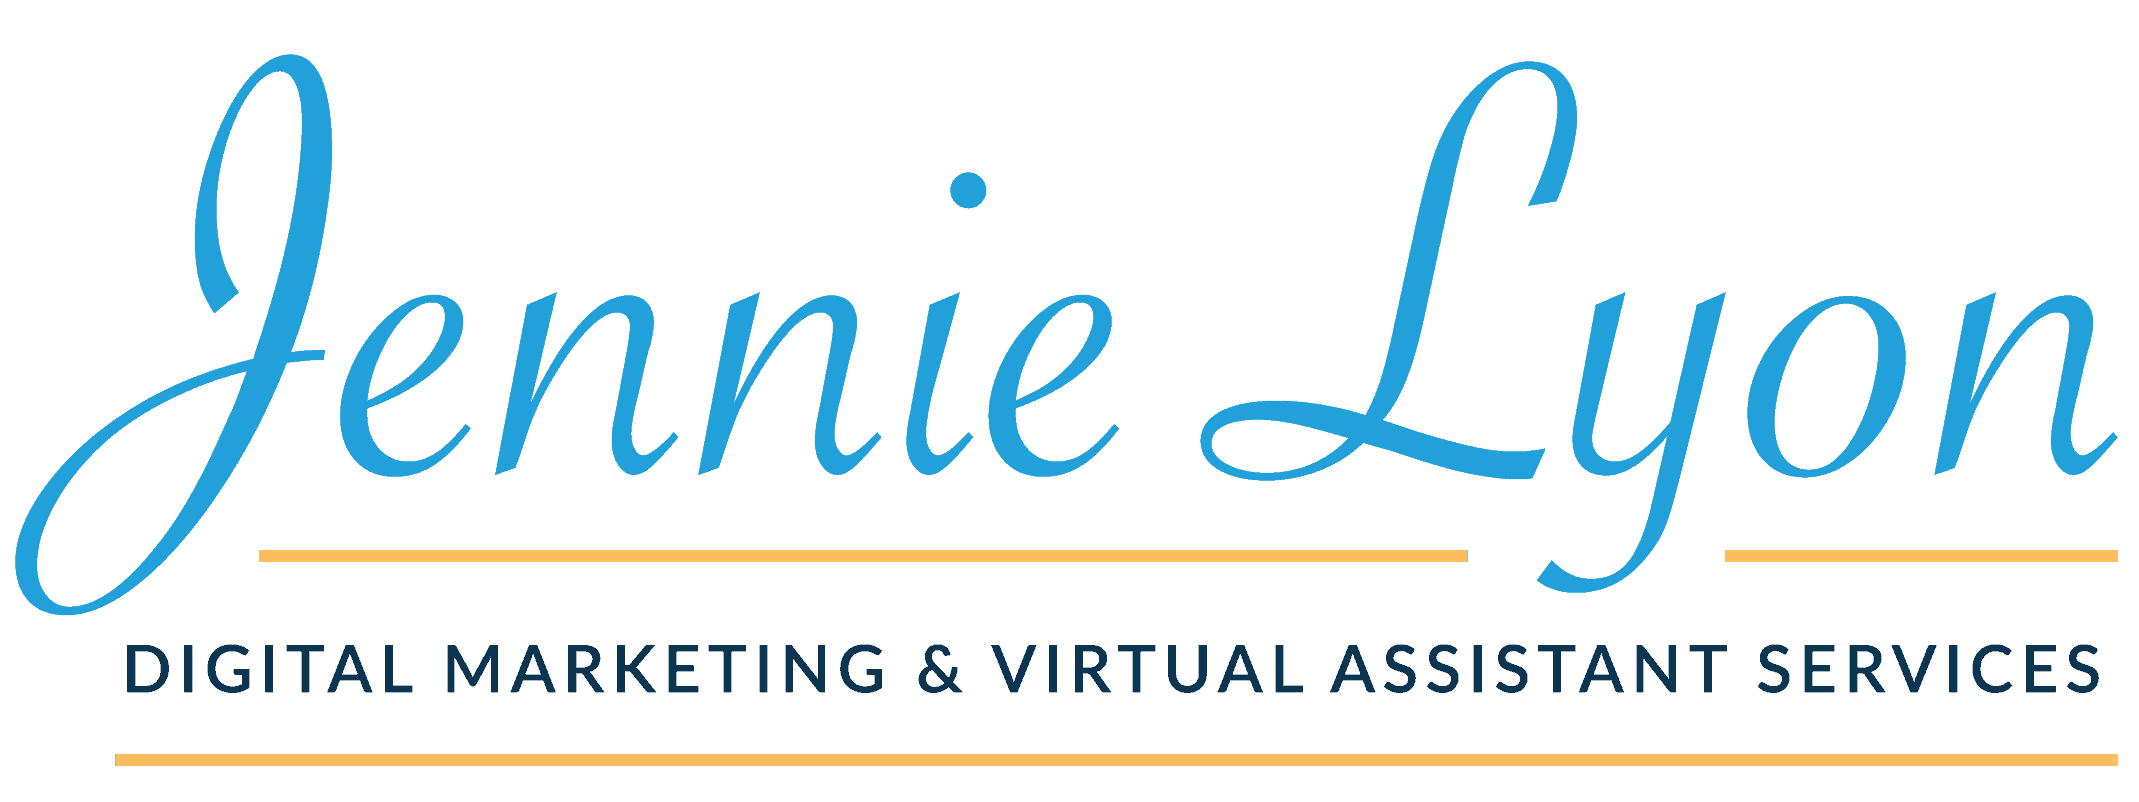 Jennie Lyon Digital Marketing & Virtual Assistant Services